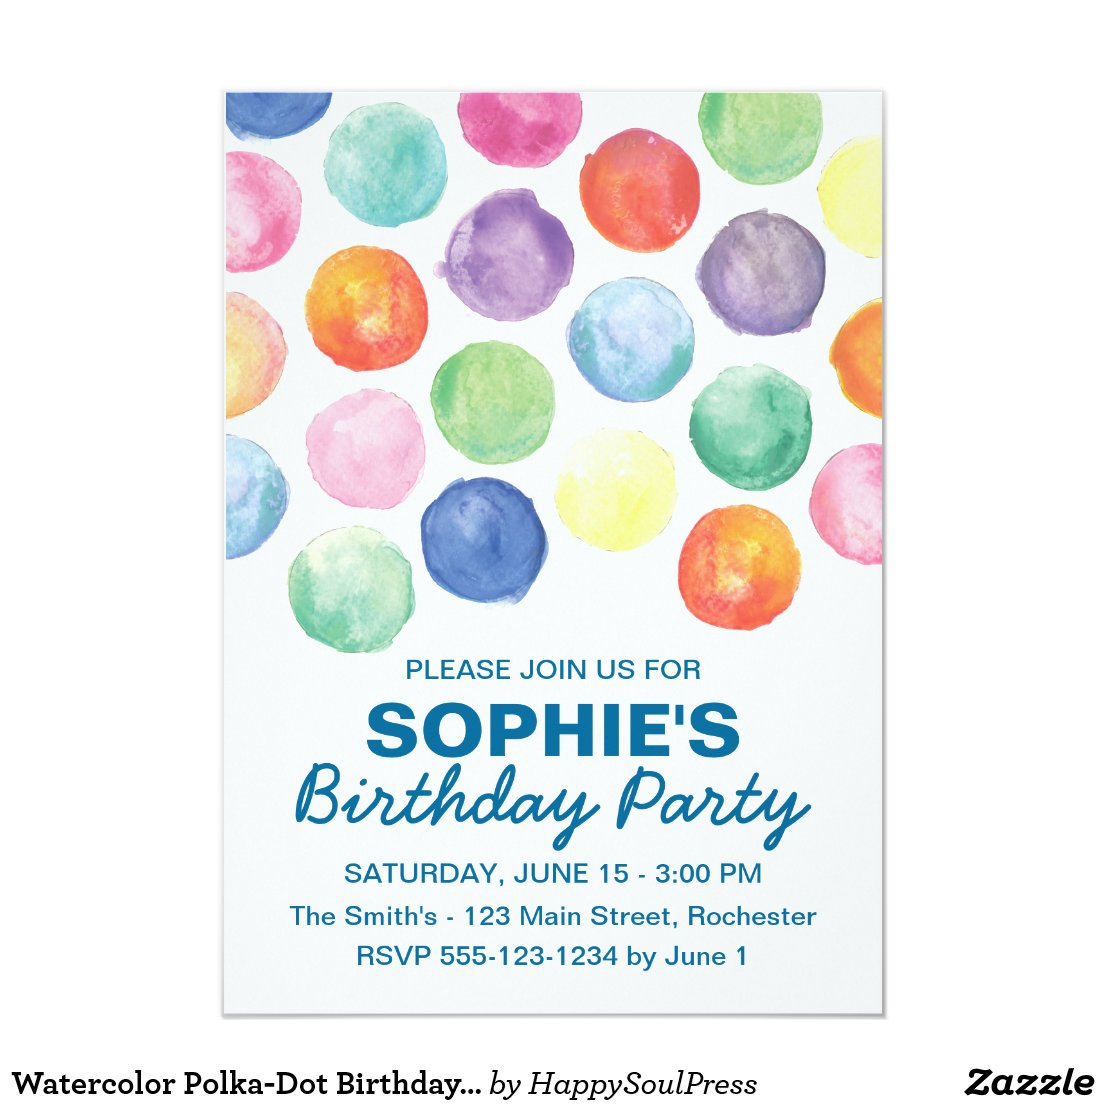 Watercolor Polka-Dot Birthday Invitation